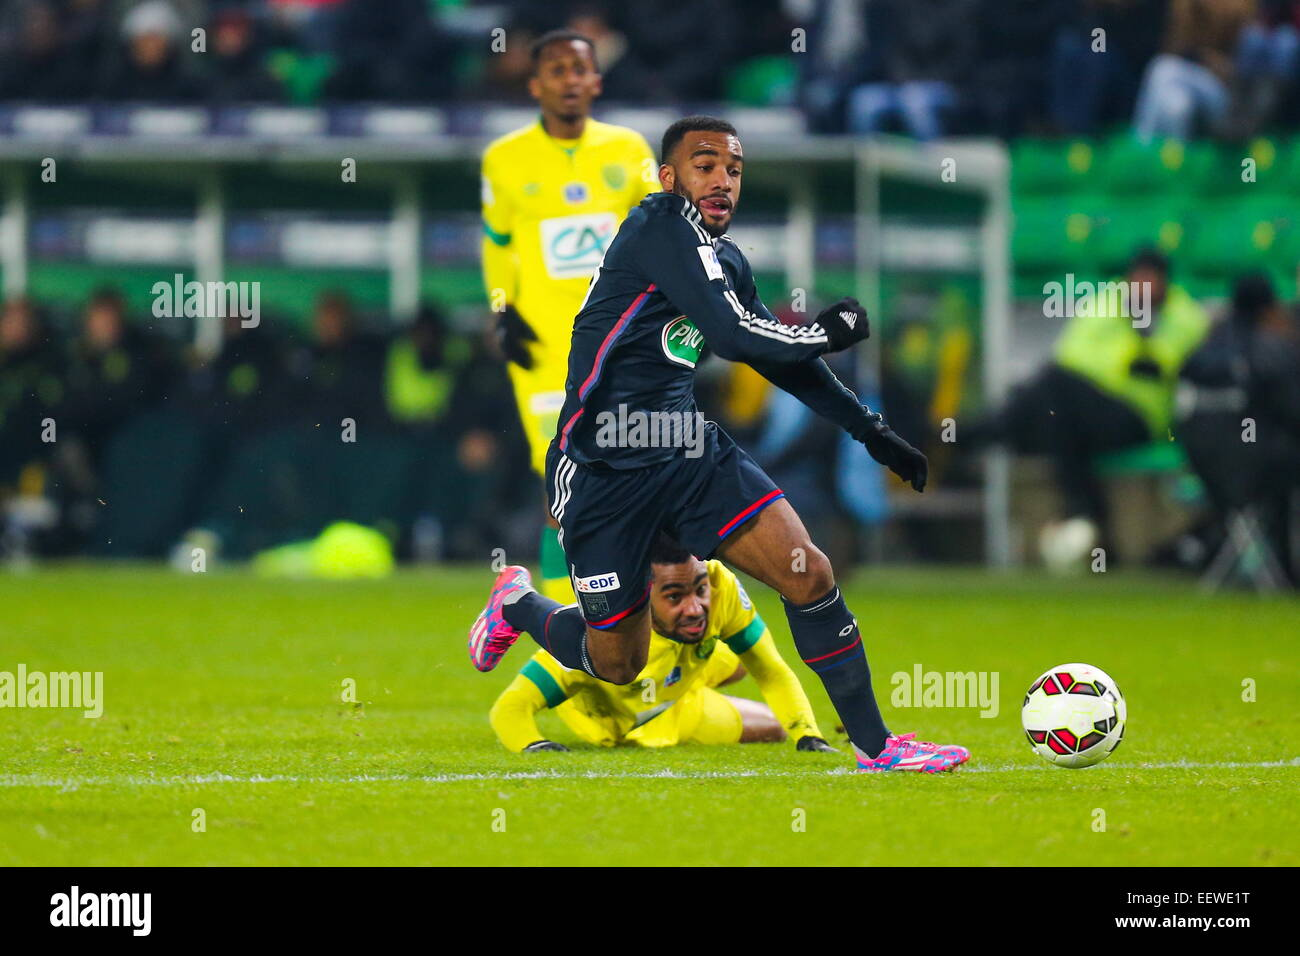 Alexandre LACAZETTE. Coupe de France 2014/2015. Photo : Vincent Michel/Icon Sport - Stock Image